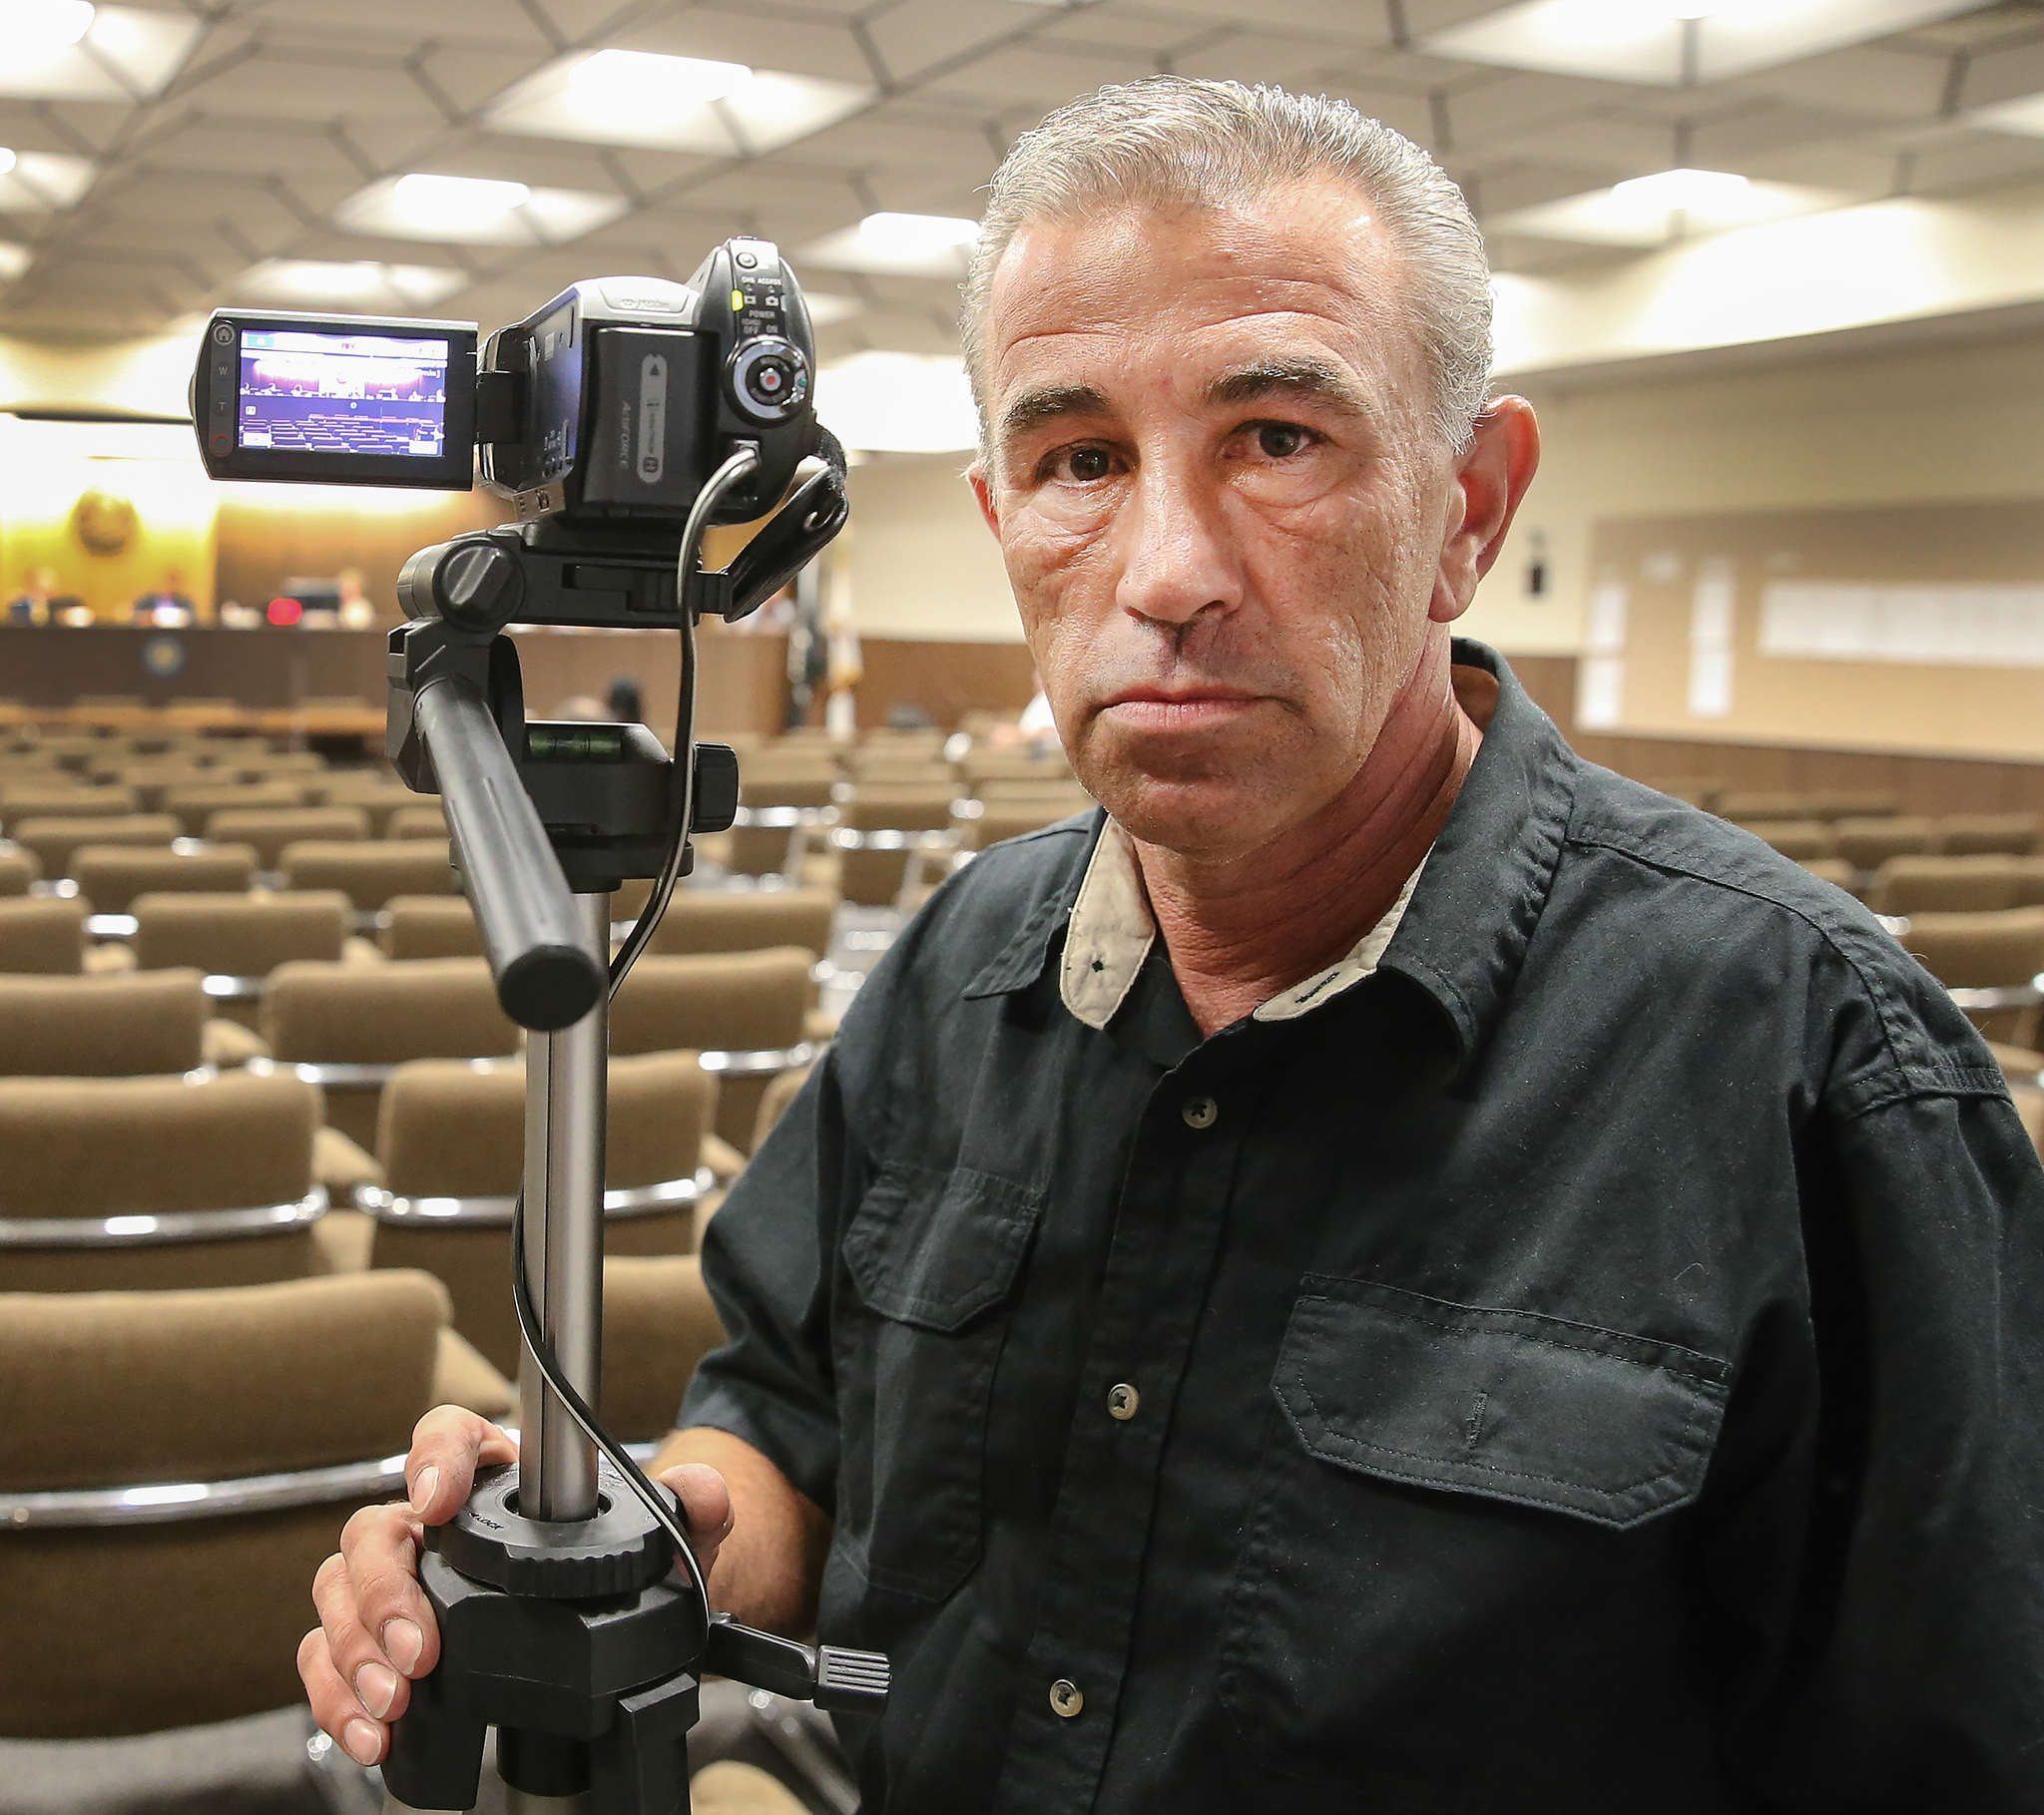 Ray Polidoro , the Republican chairman in Gloucester Township, got so frustrated with the township council meetings not being shown on TV that he set up his own YouTube channel. STEVEN M. FALK / Staff Photographer